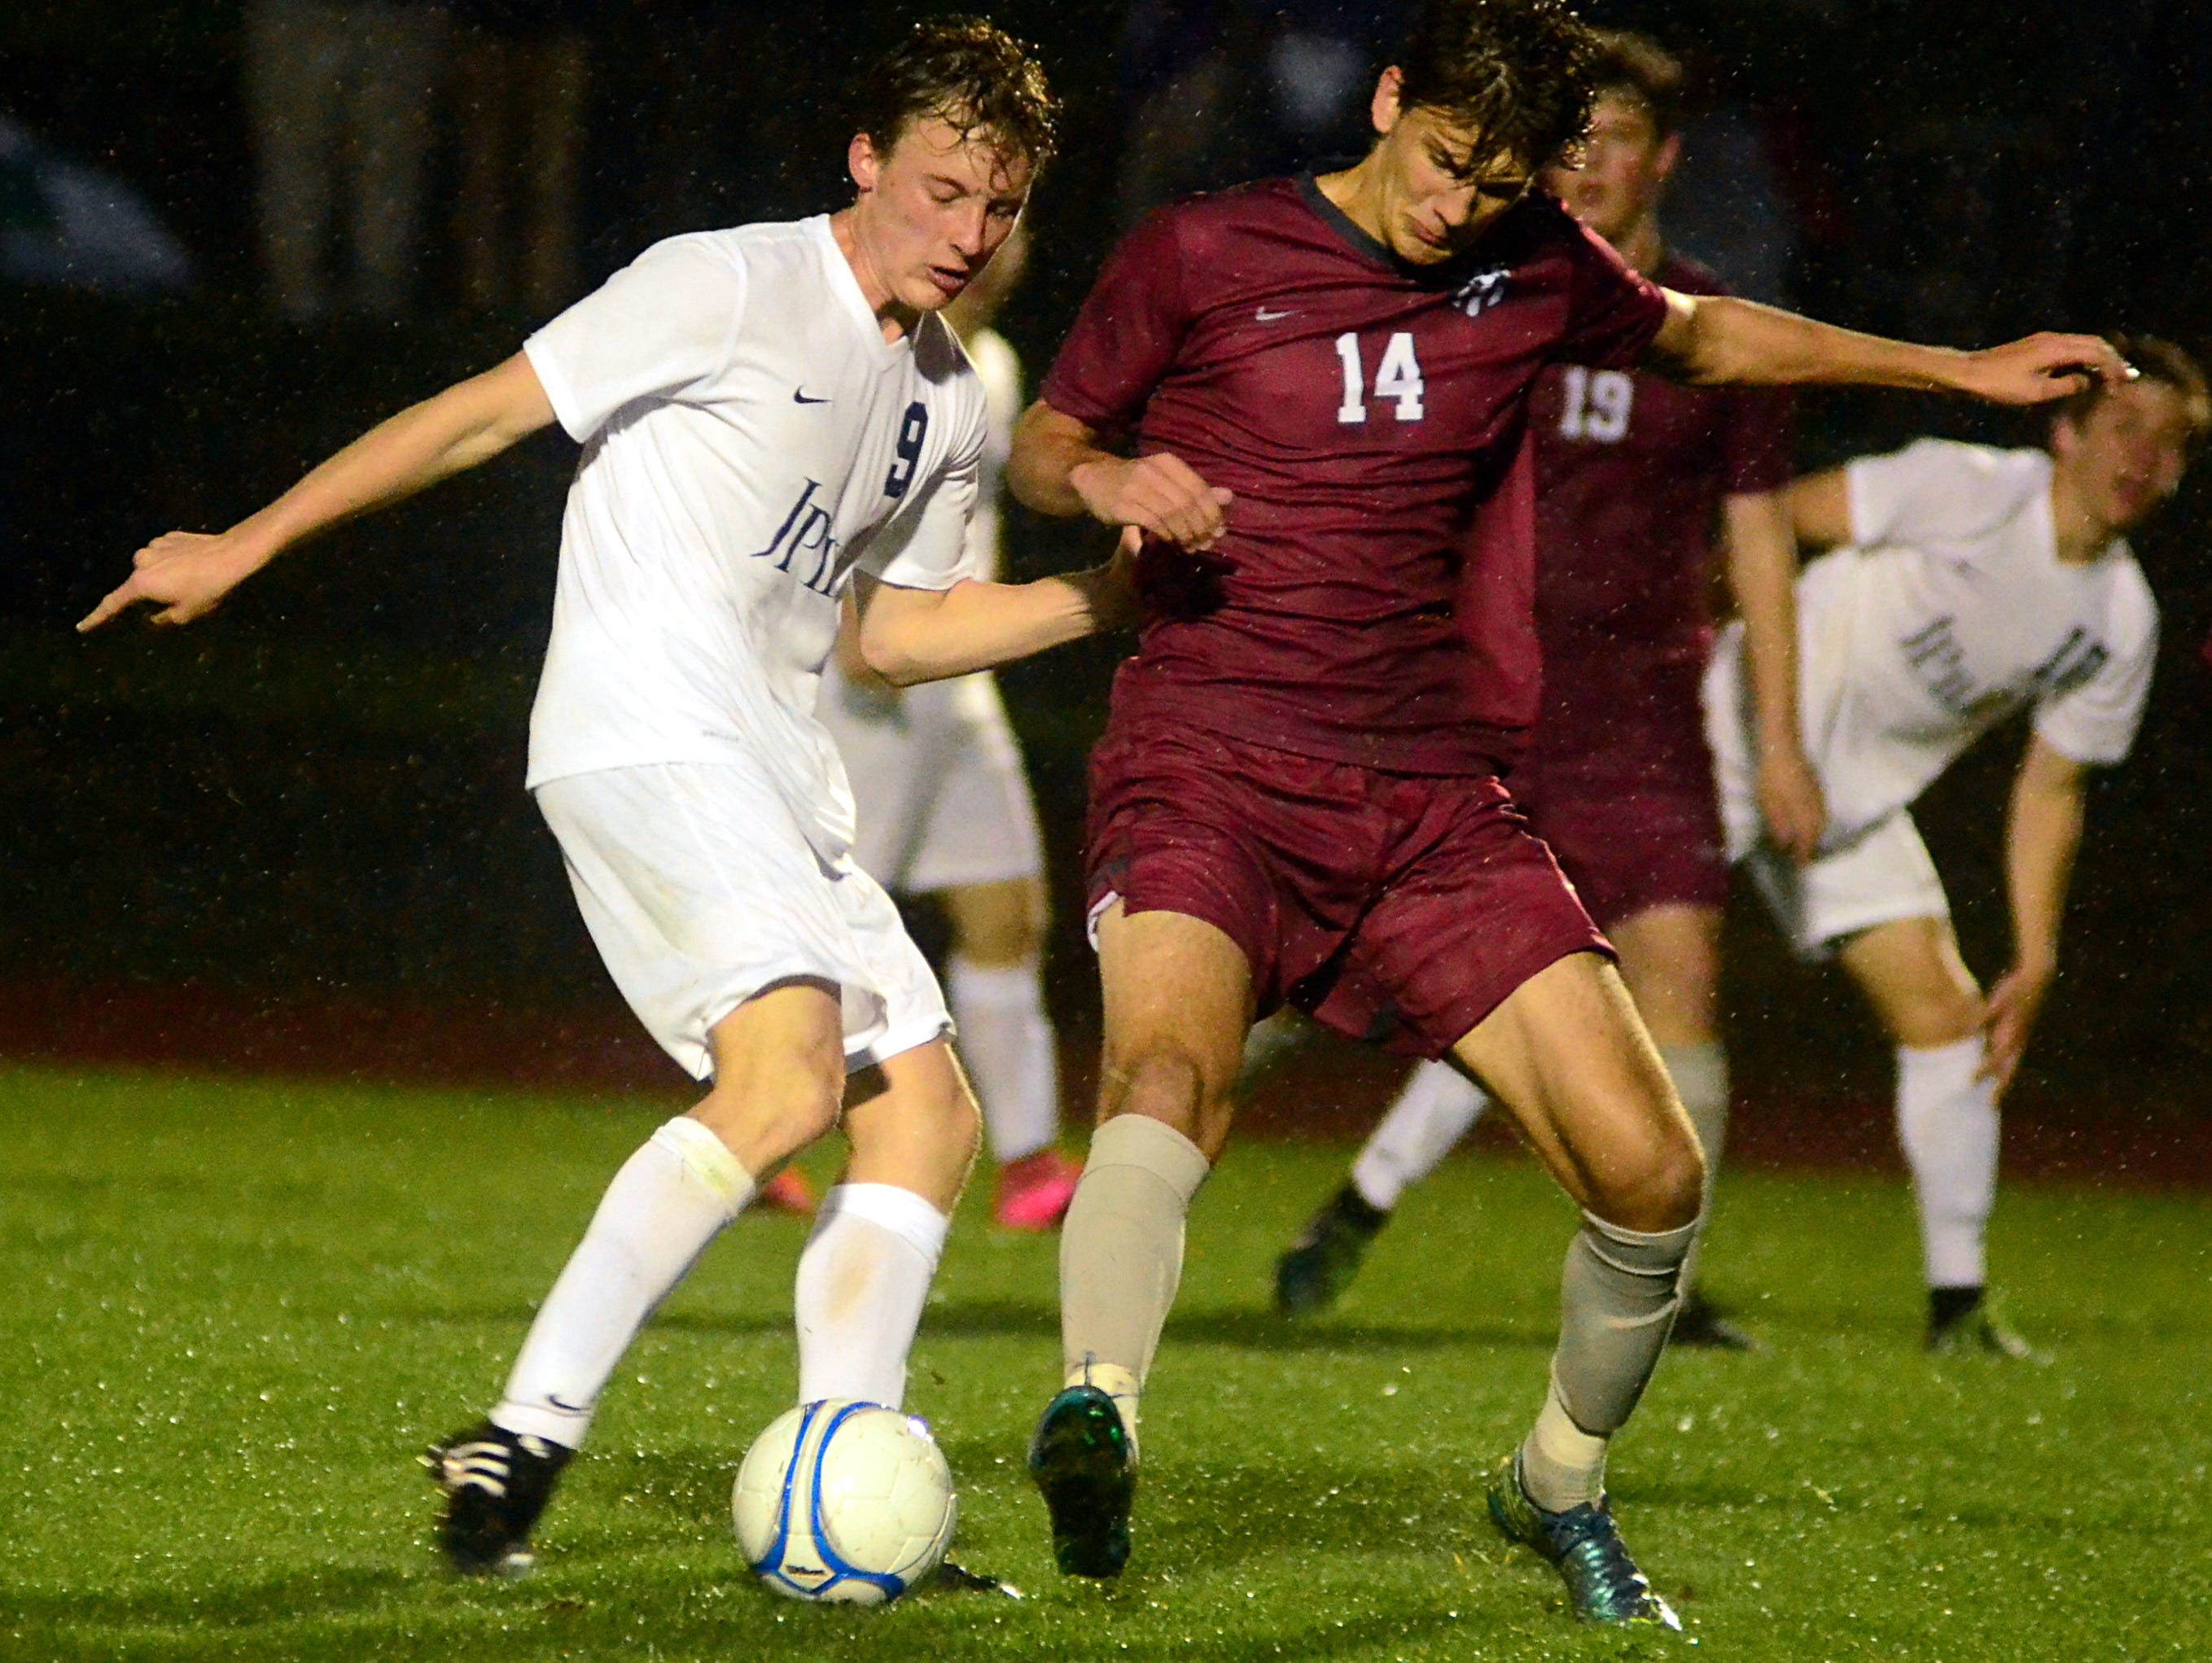 Pope John Paul II High senior Andrew Harrison battles for possession with Montgomery Bell Academy senior Will Emerson during second-half action.